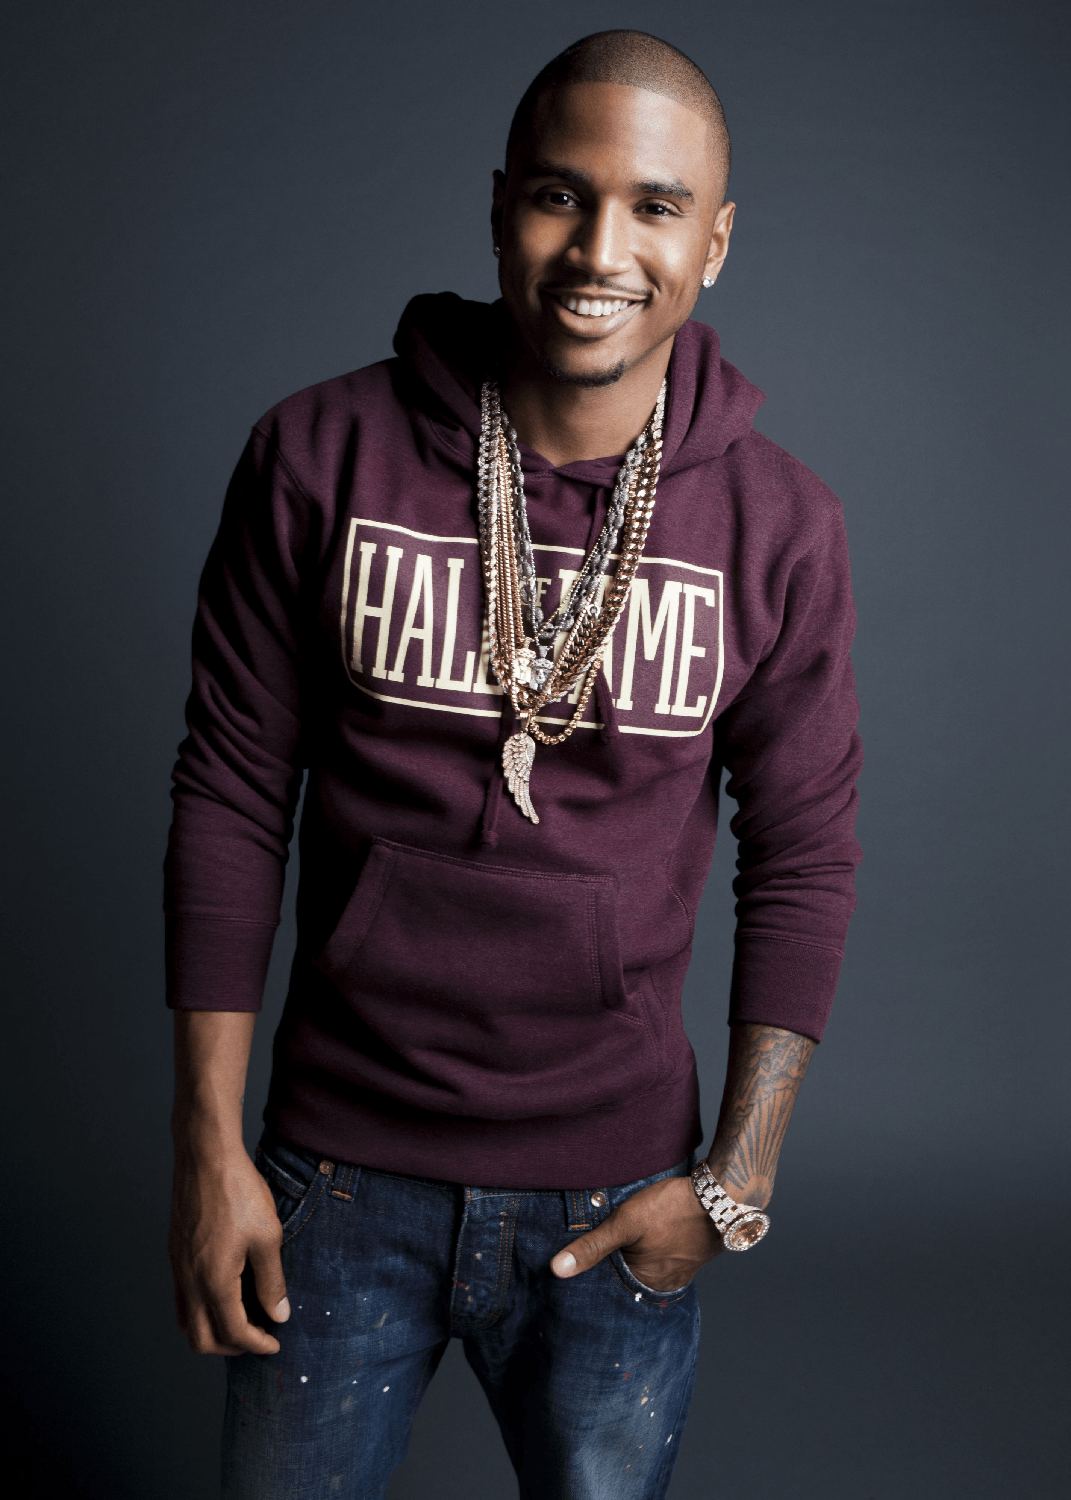 trey songz yorkie puppy celebrity dogs